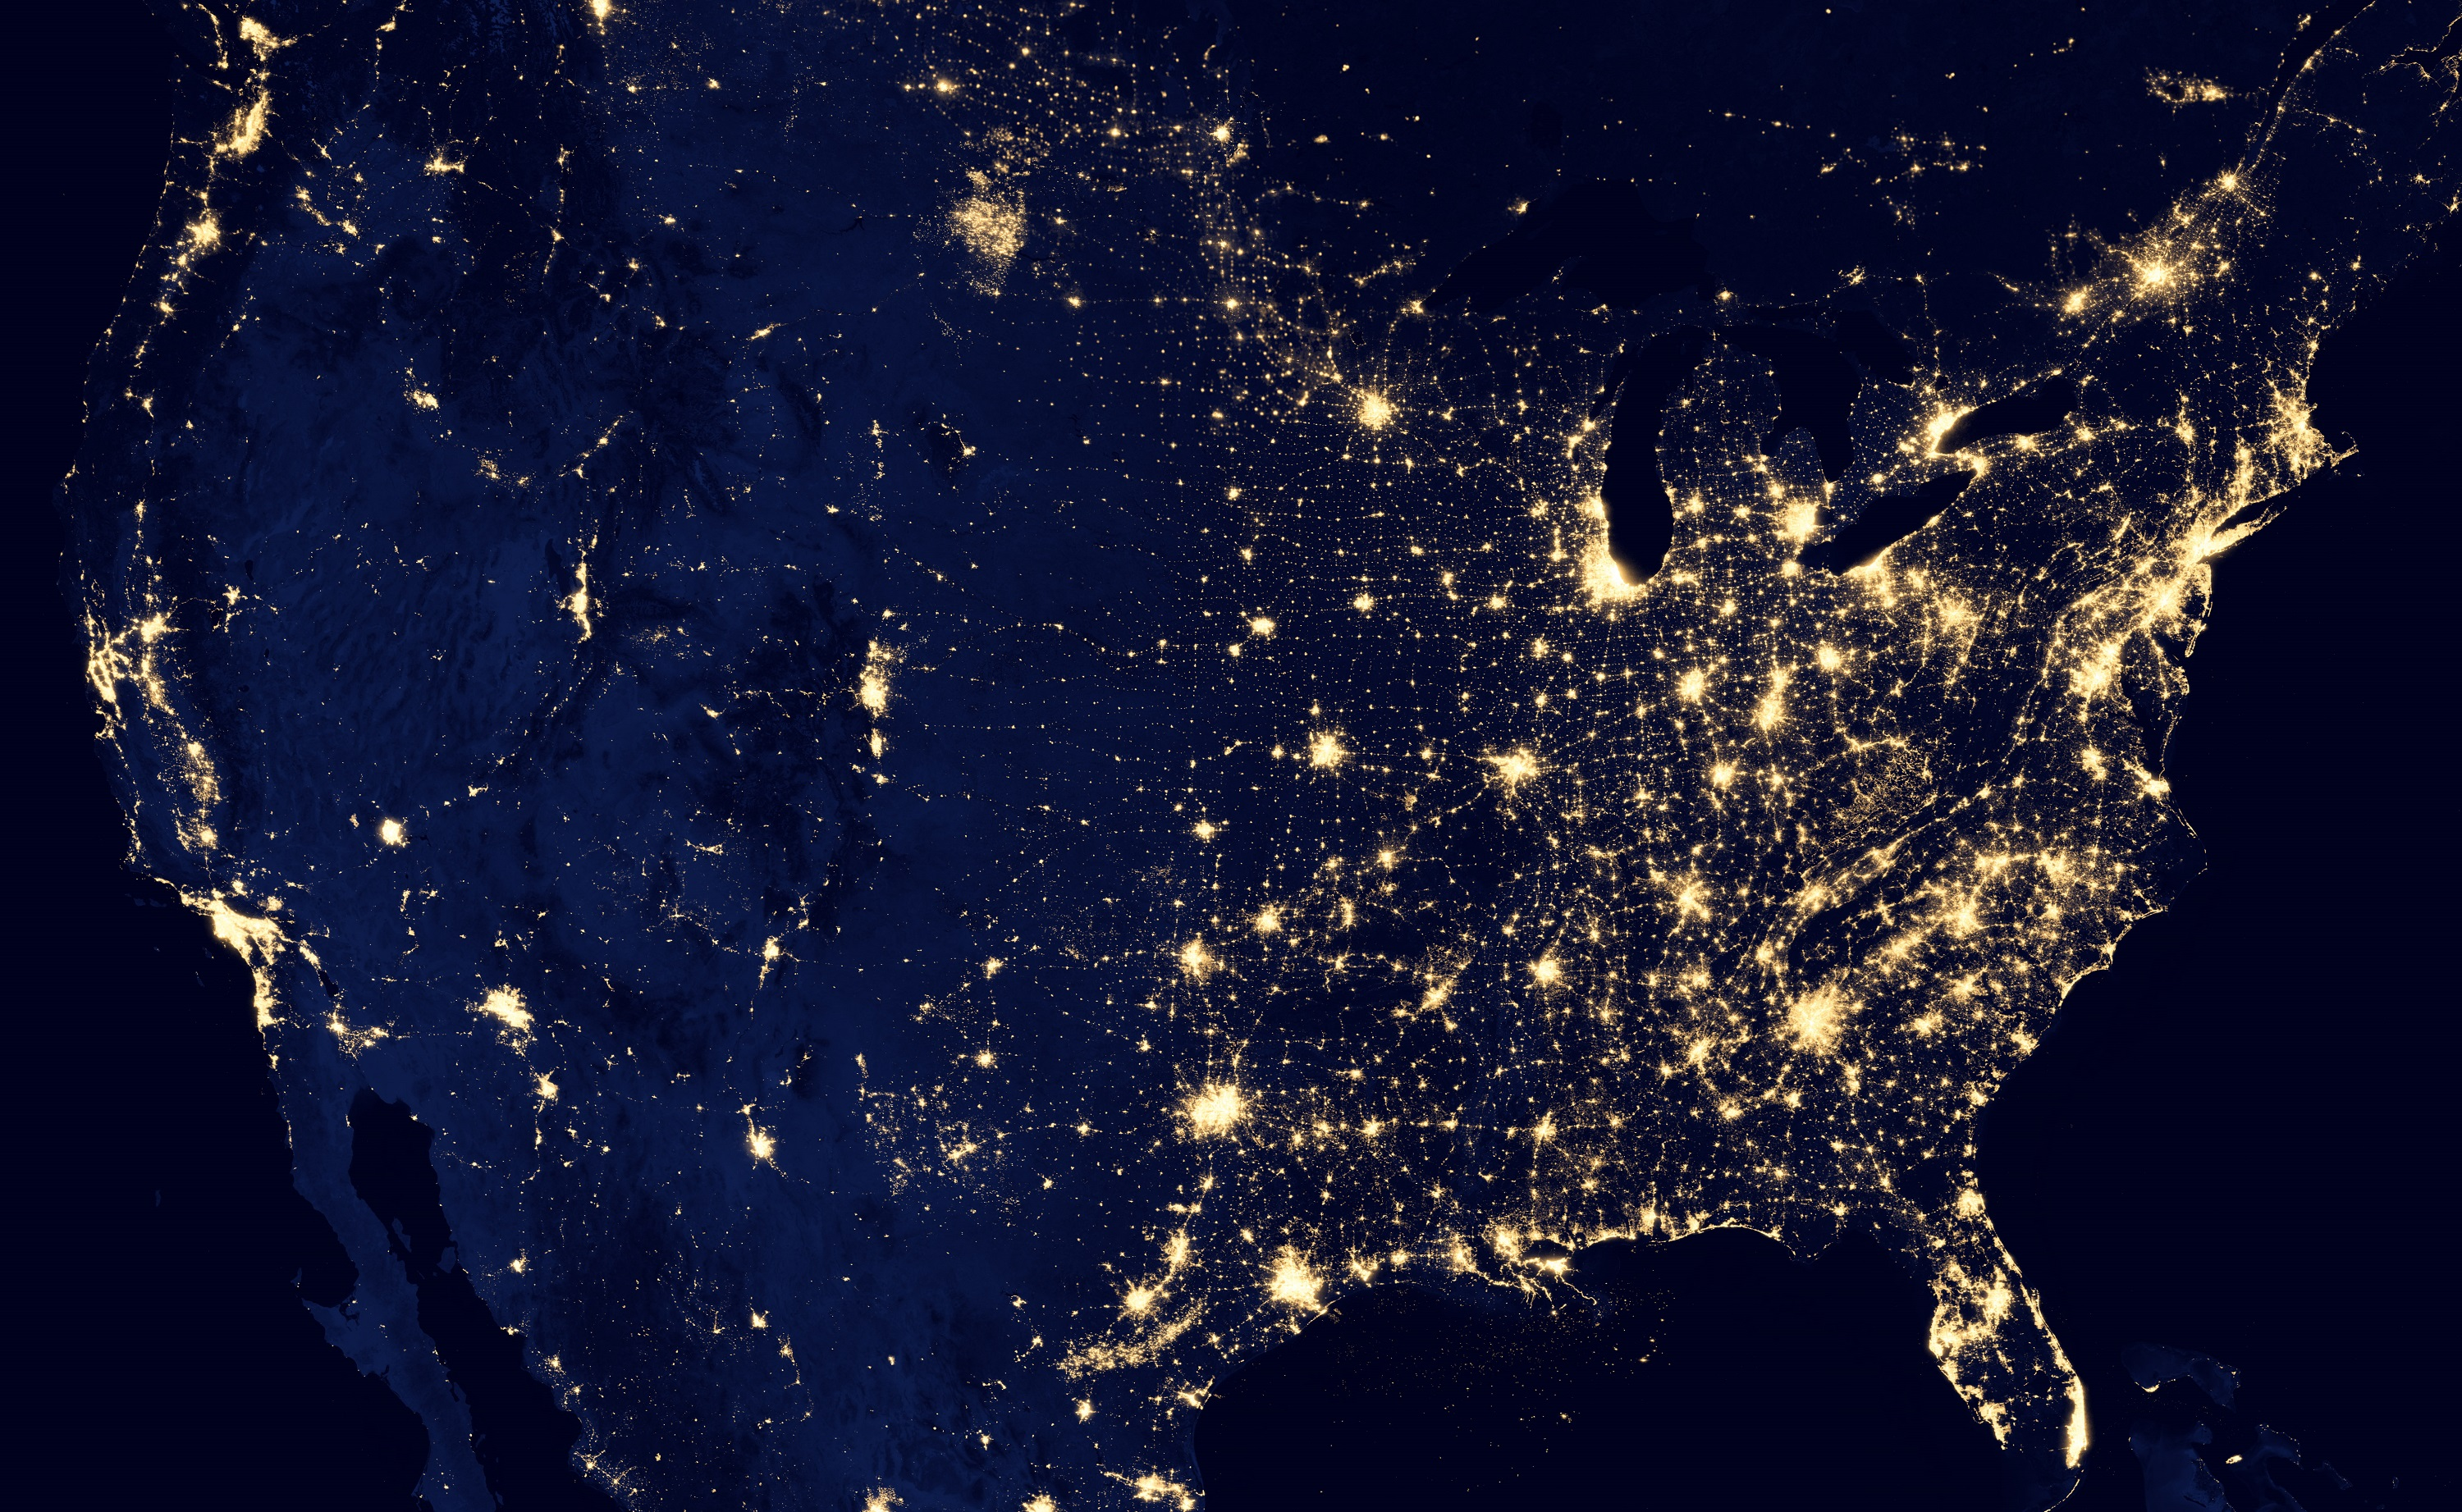 NASA Helps National Parks Track Impact of Noise, Lighting on Wildlife